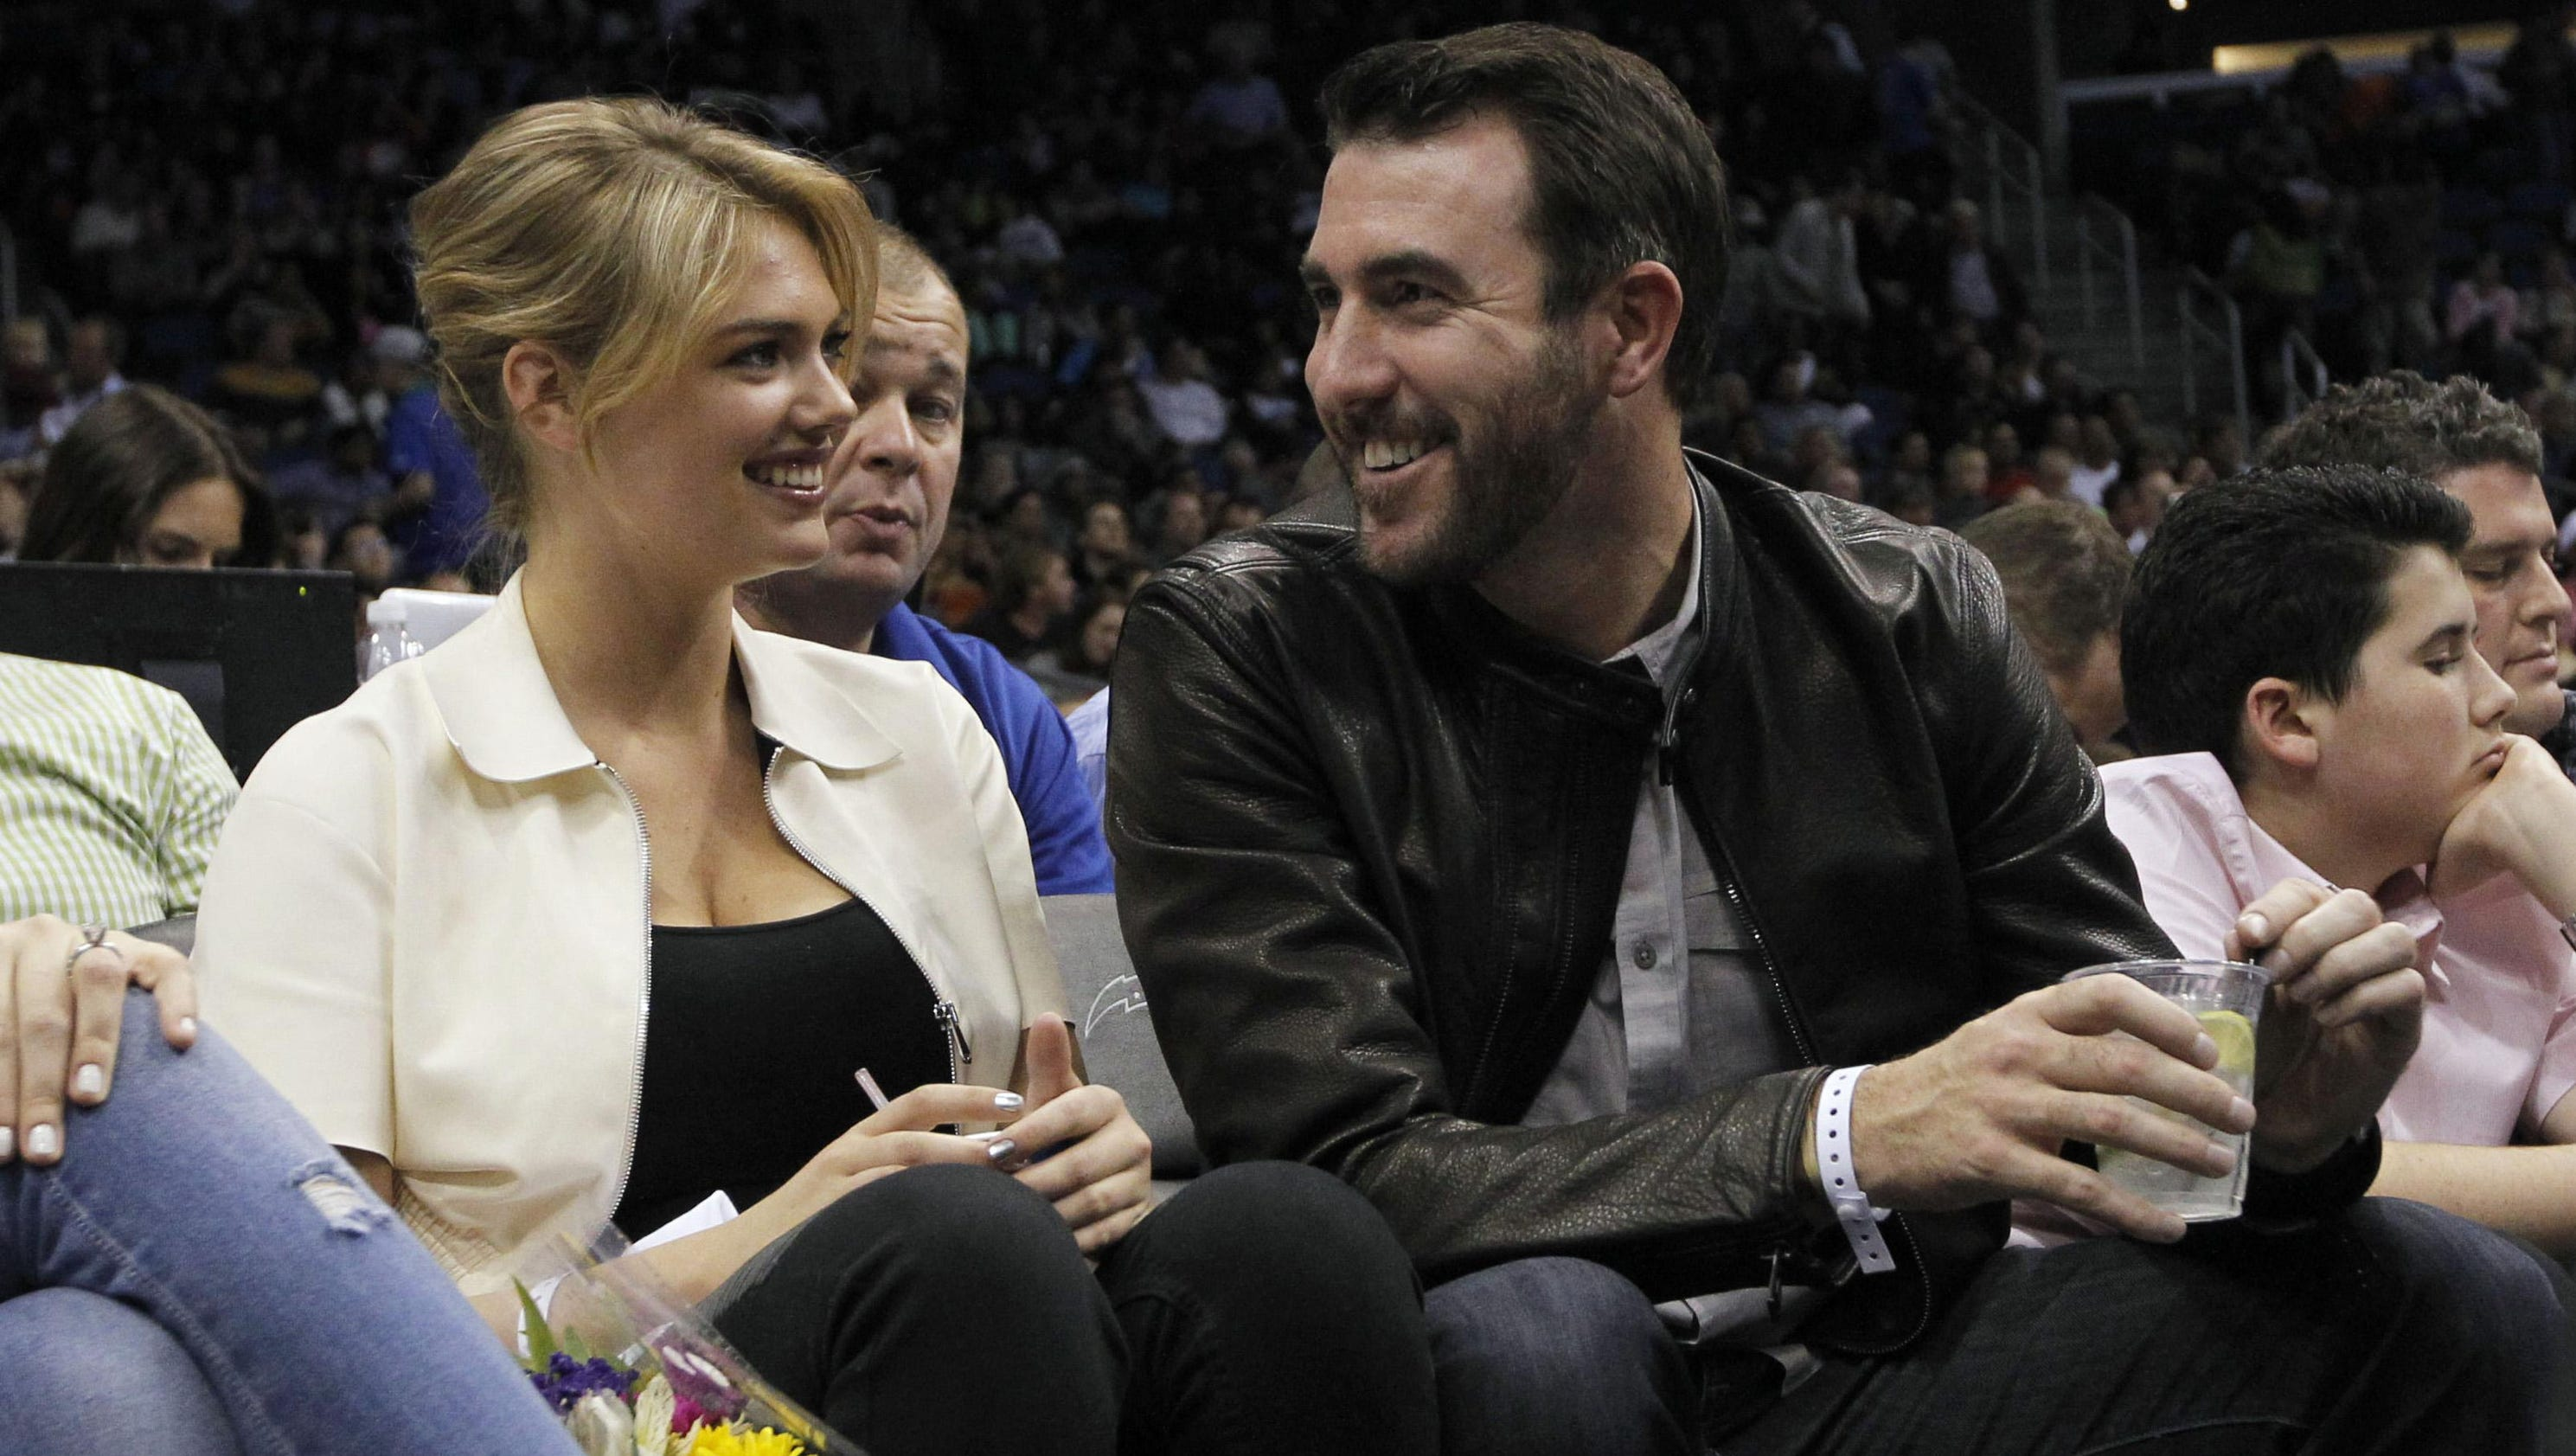 Is verlander dating kate upton